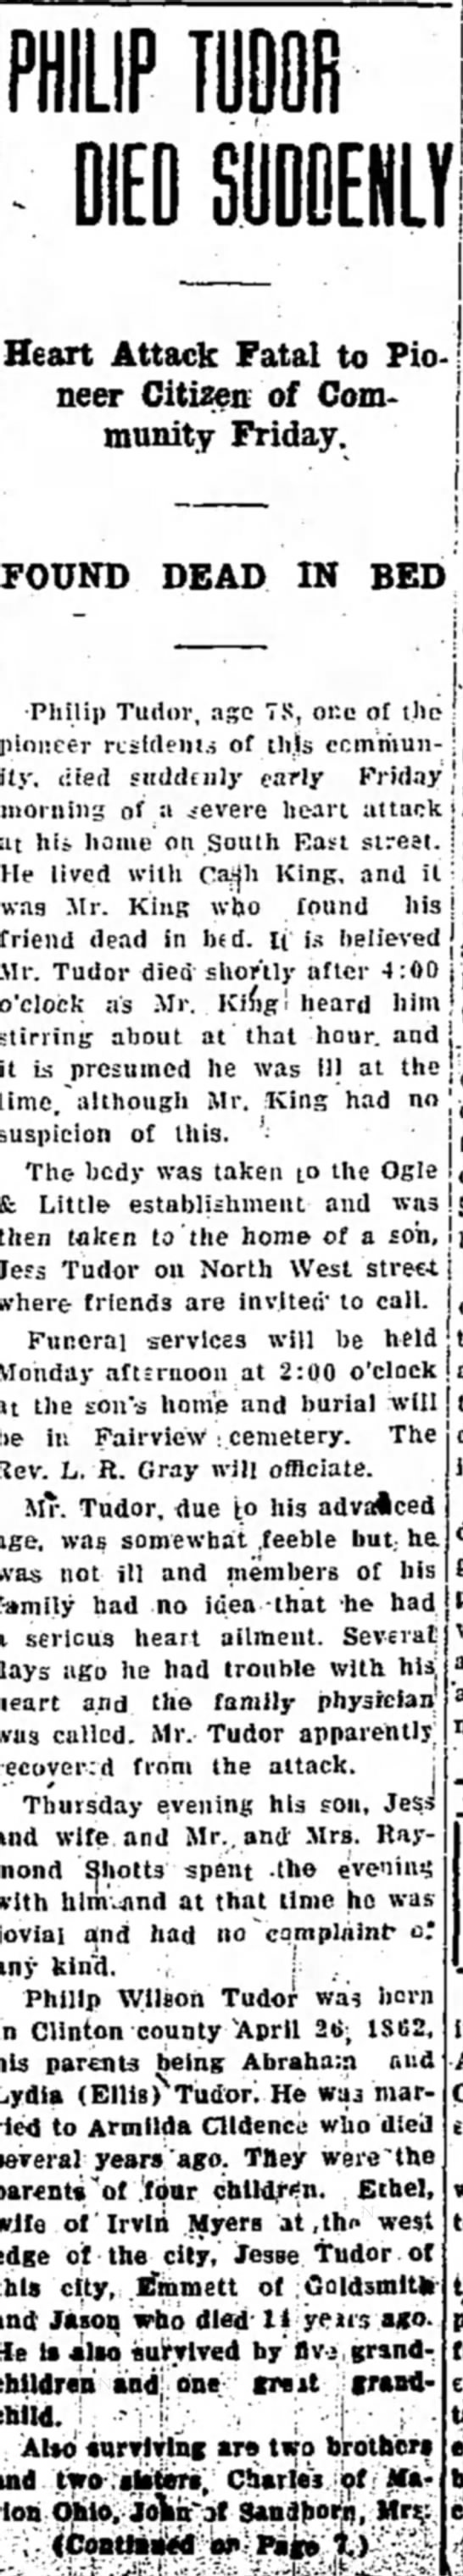 Phillip Tudor obit 16 Feb 1940 part 1 -